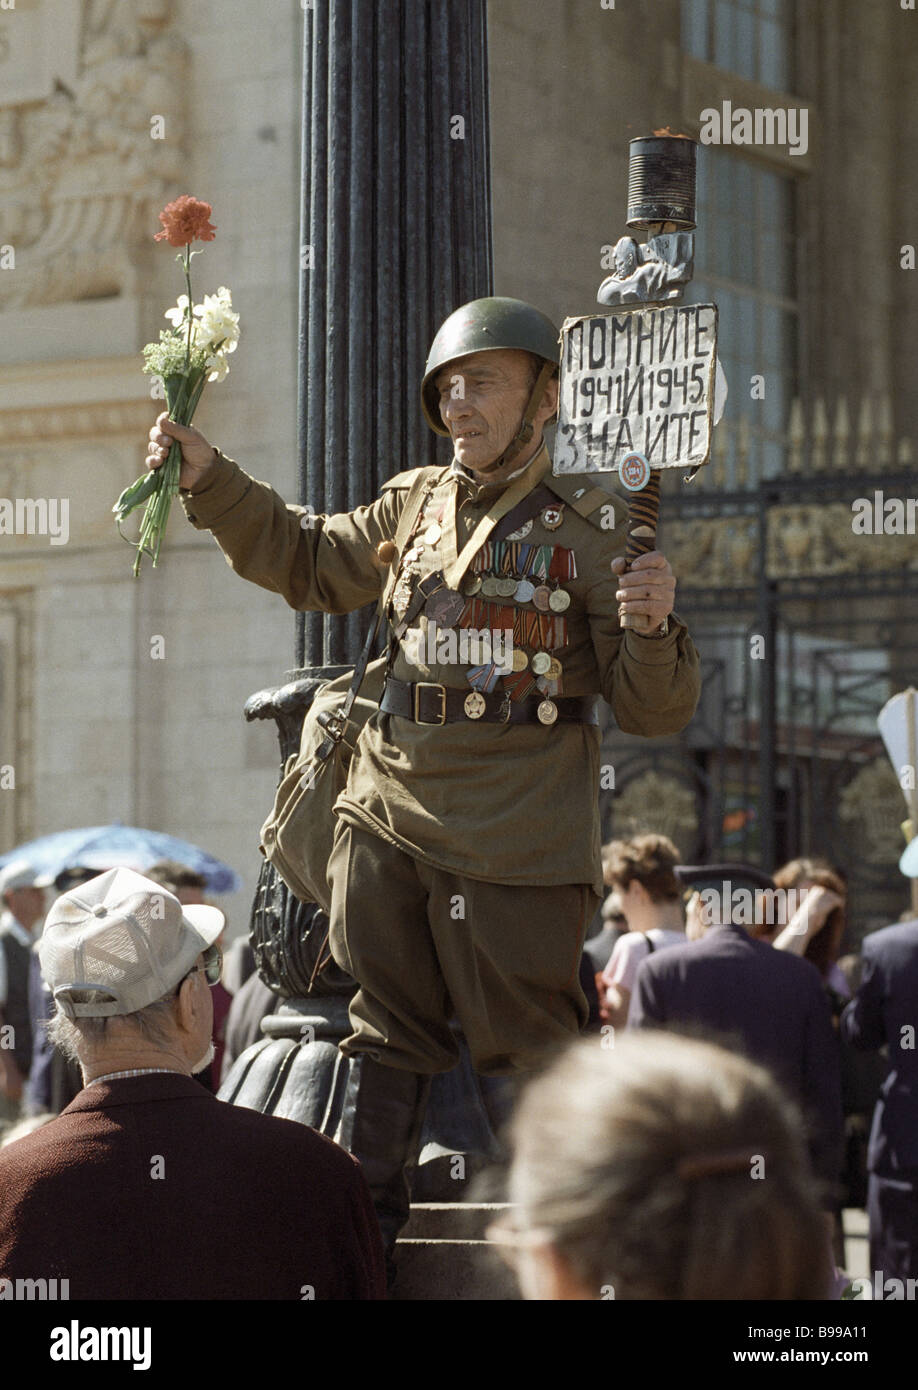 Second world war veteran with flowers on V Day - Stock Image